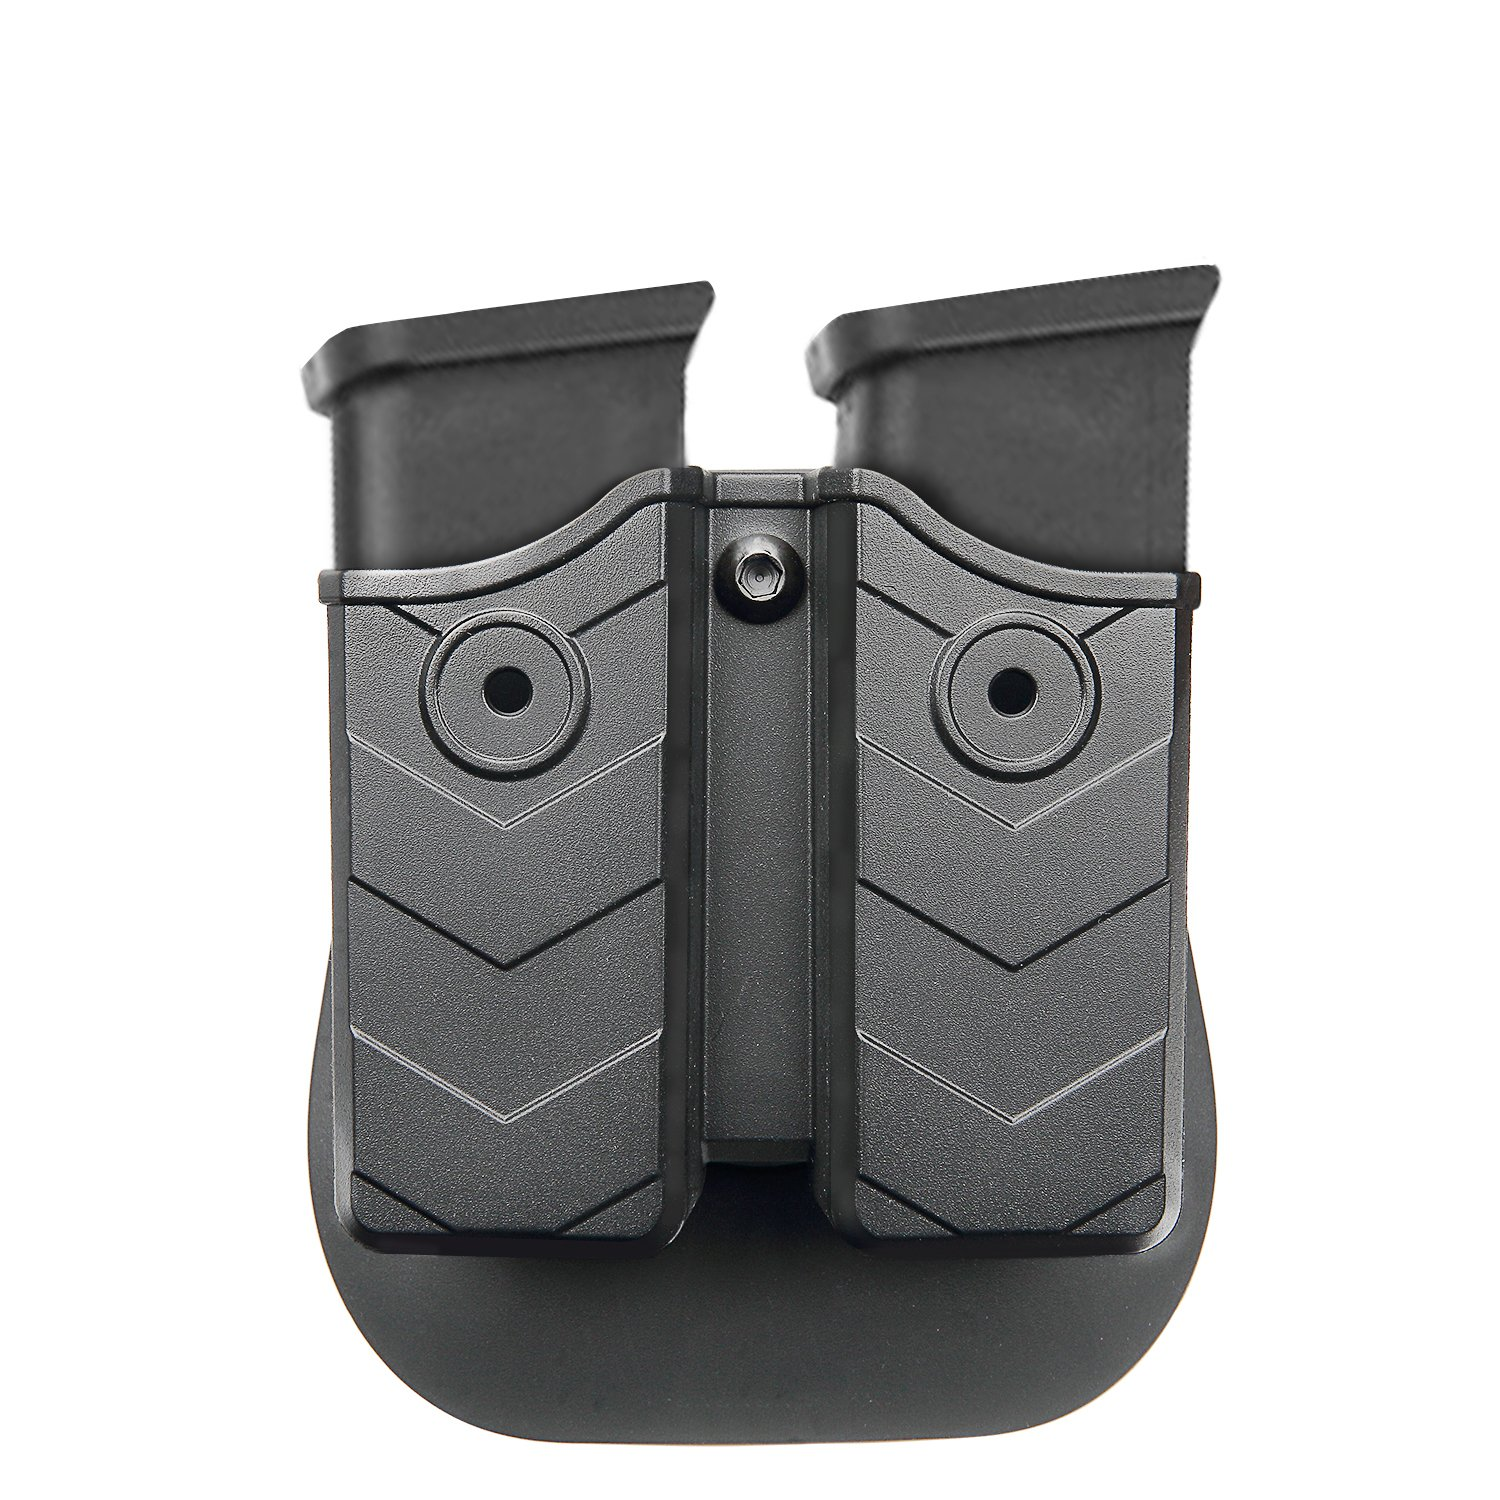 Efluky Double Magazine Pouch 9mm 40 Cal Taurus Millennium Schematics Holster Stack Holder With Paddle For Glock Hk Sw Ruger Sig